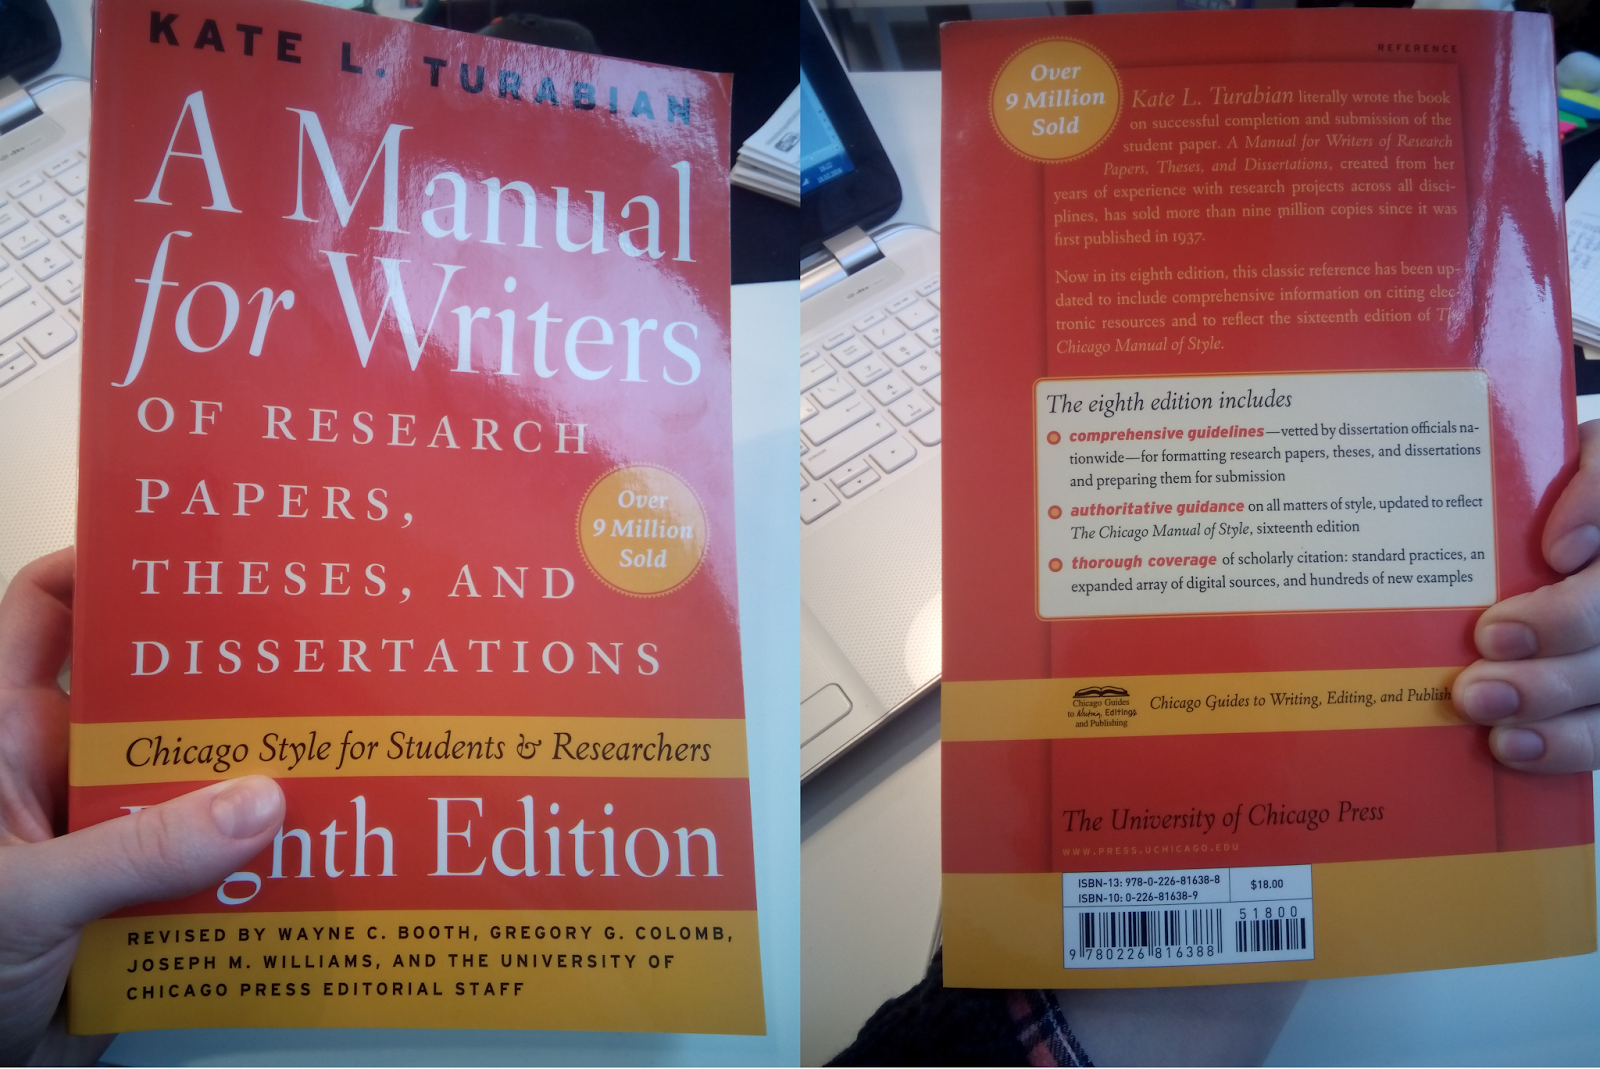 022 Manual For Writers Of Research Papers Theses And Dissertations Paper Sensational A Eighth Edition Pdf 9th 8th Full